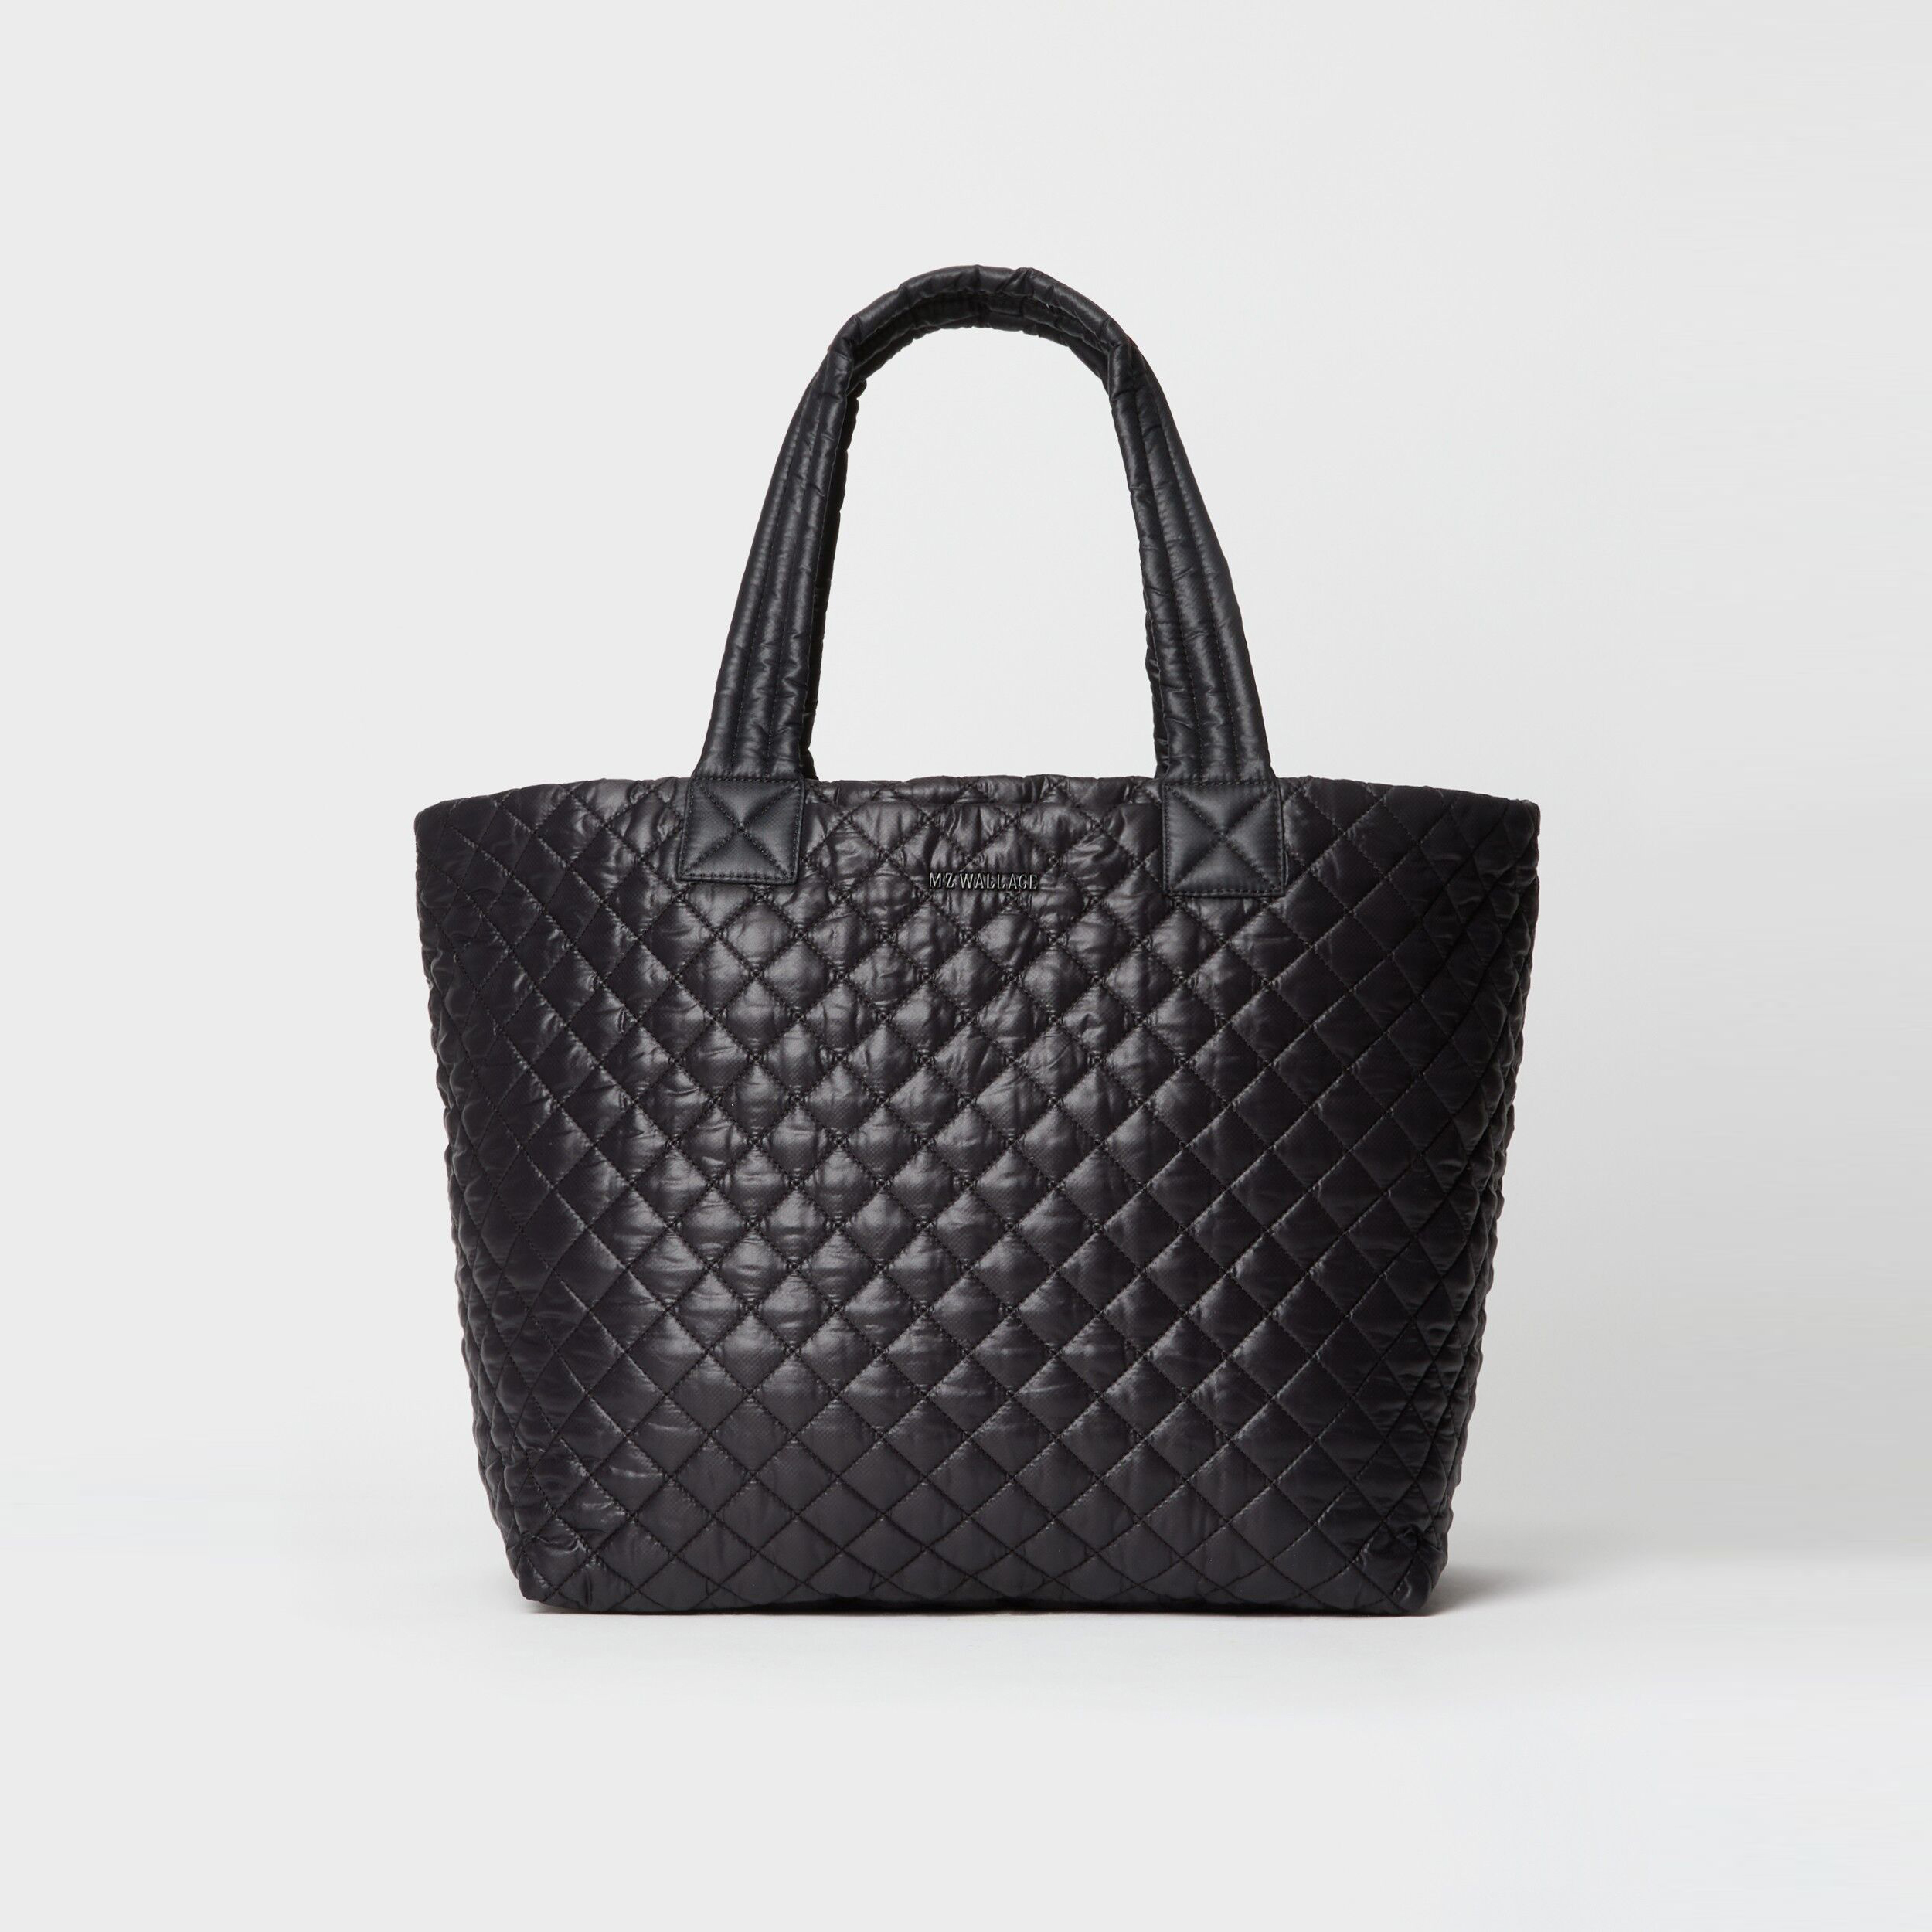 MZ Wallace Large Metro Tote Deluxe in Black